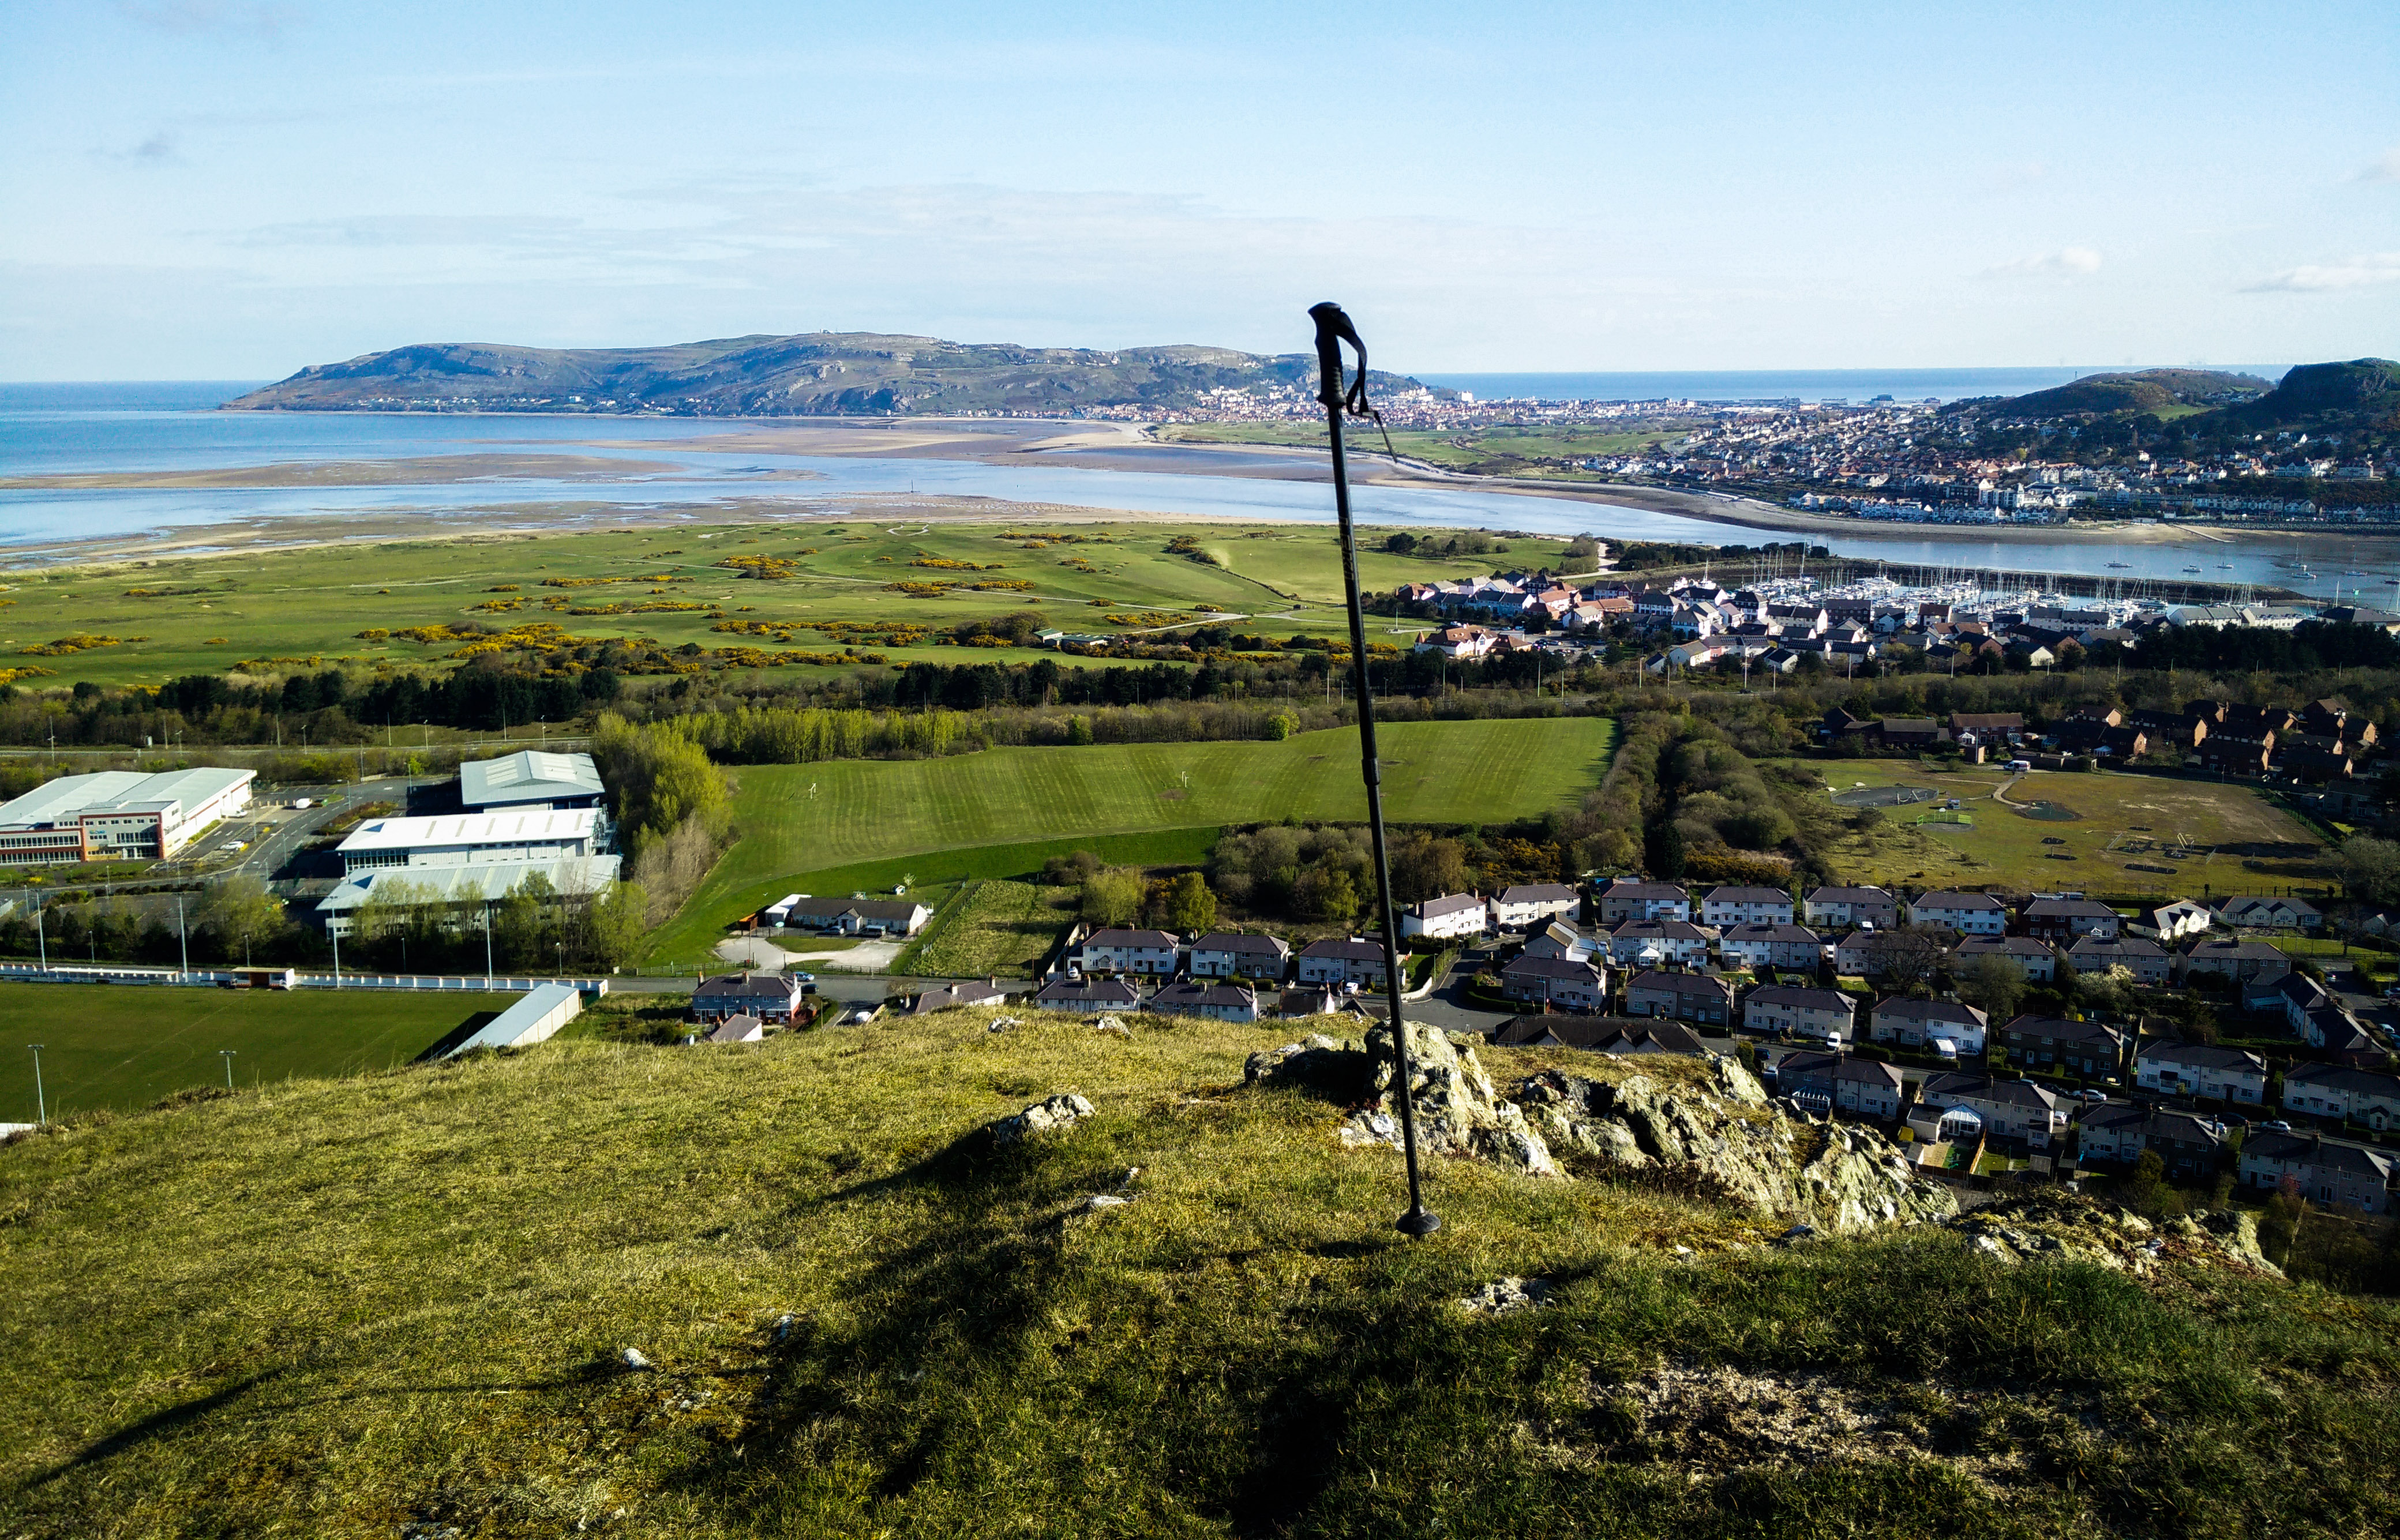 The view from Conwy Mountain over the bay and Llandudno